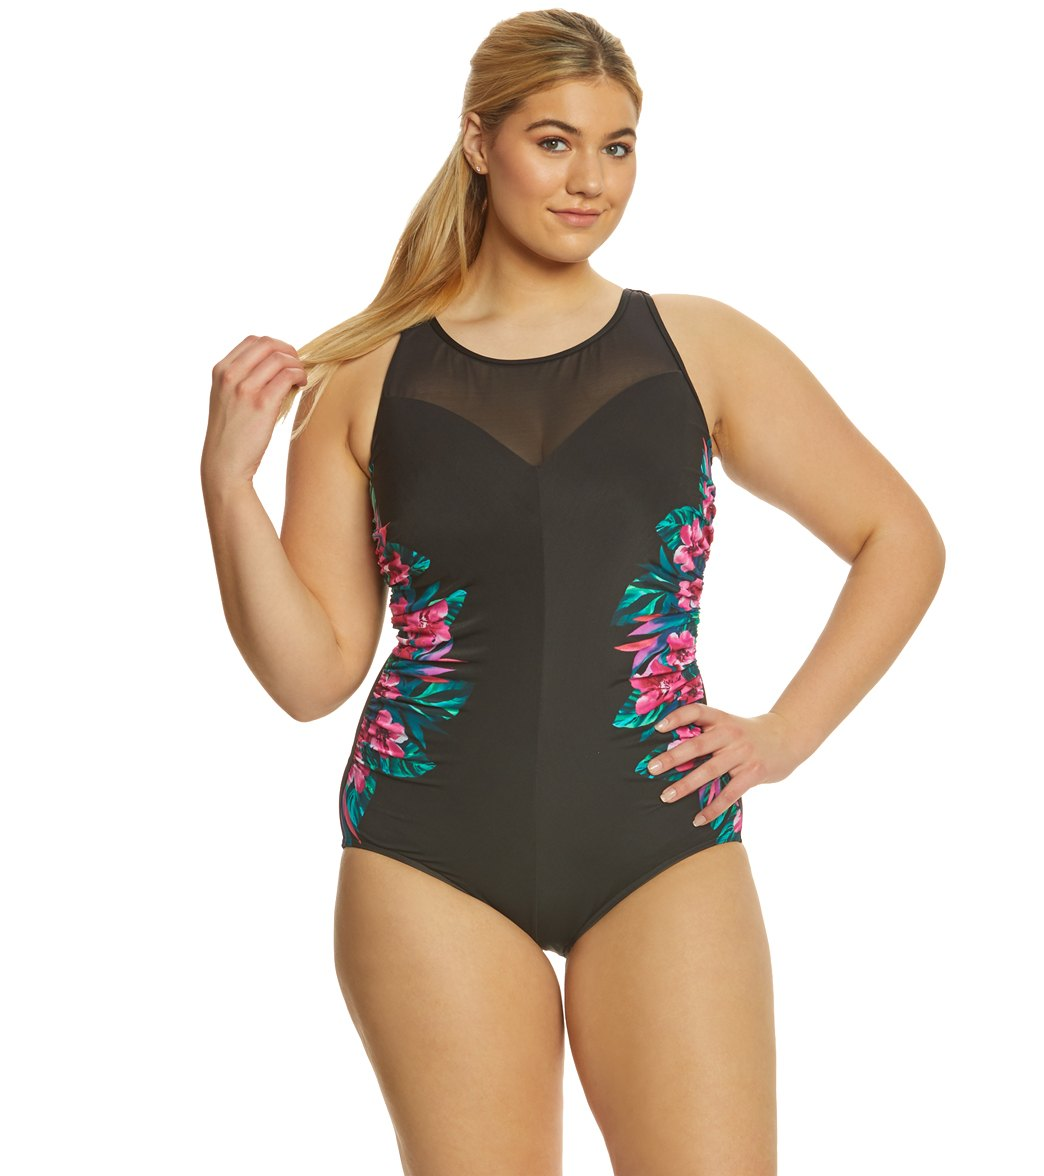 f5de568479dc5 ... Miraclesuit Plus Size Tahitian Temptress Fascination One Piece Swimsuit  Play Video. MODEL MEASUREMENTS